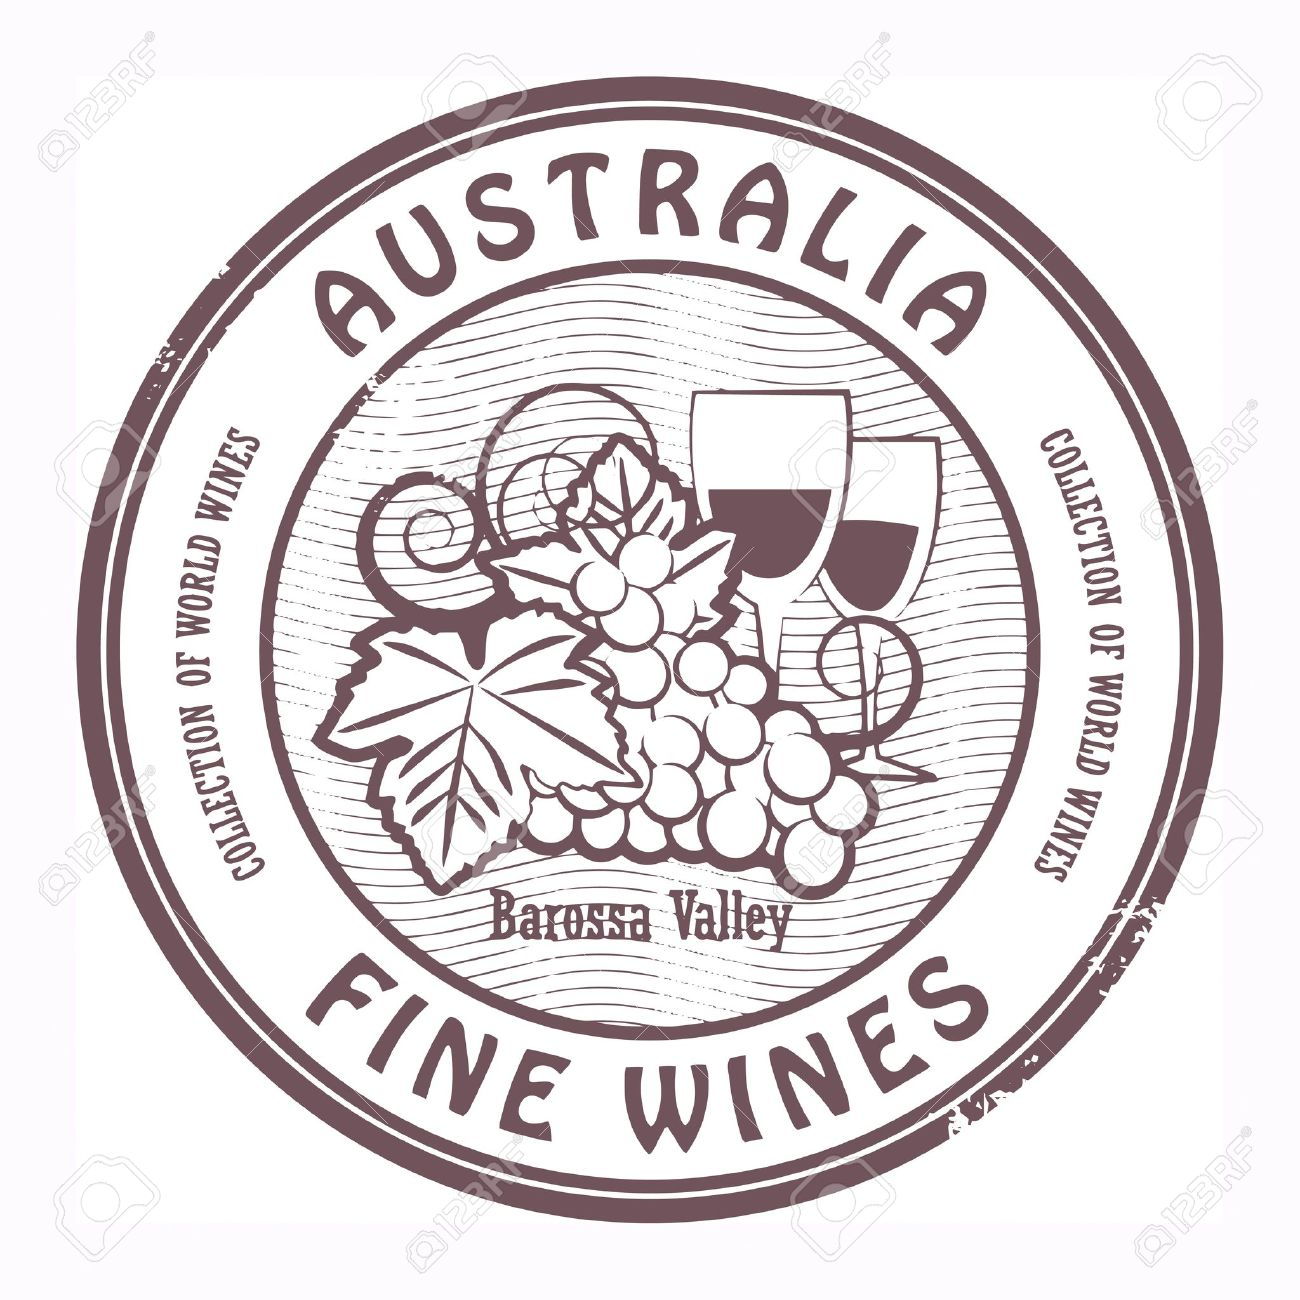 231 Australian Food Stock Vector Illustration And Royalty Free.